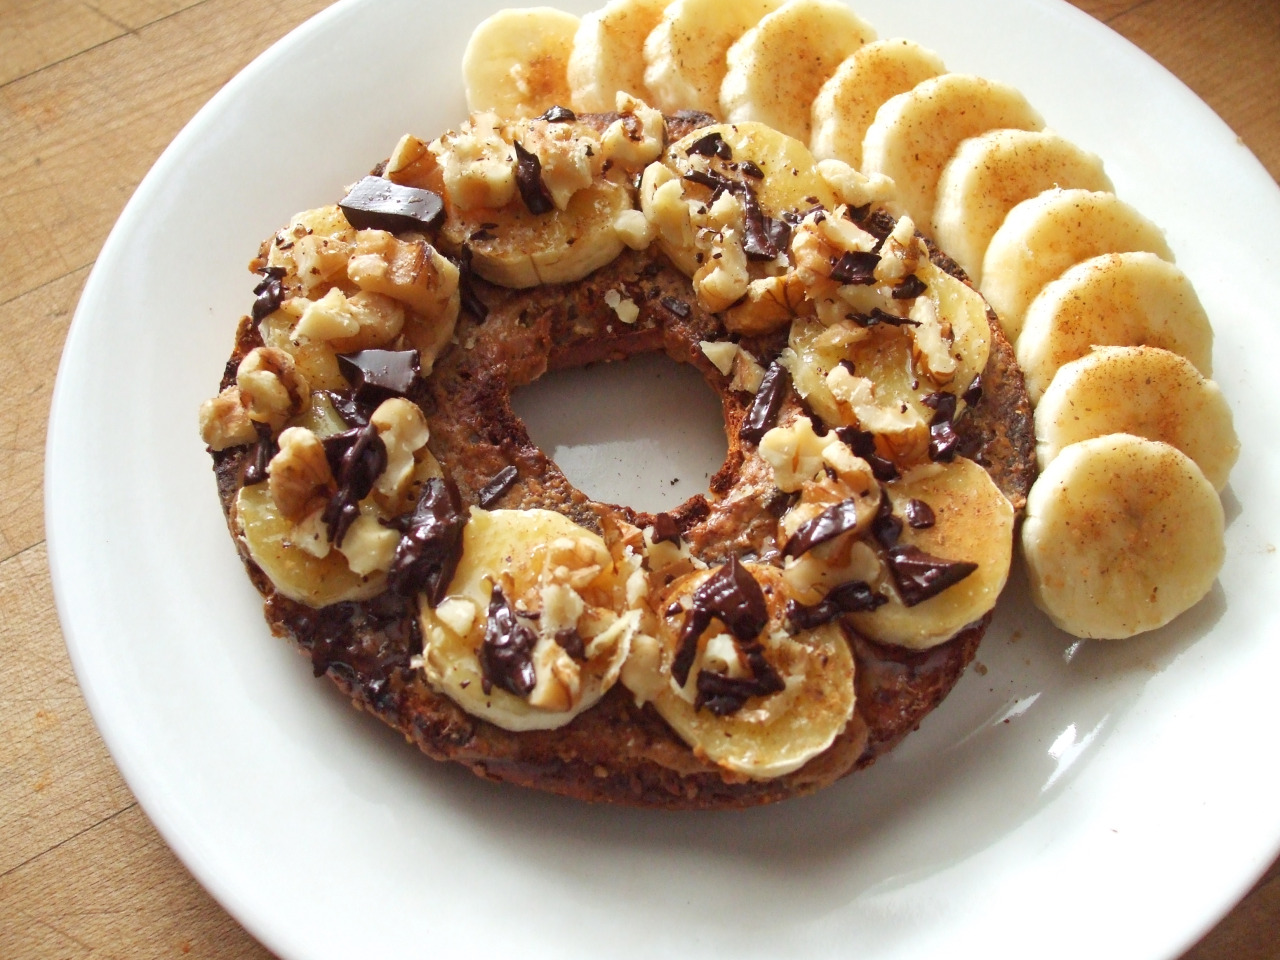 garden-of-vegan:  broiled whole grain bagel with almond butter, banana, cinnamon, maple syrup, walnuts, and dark chocolate